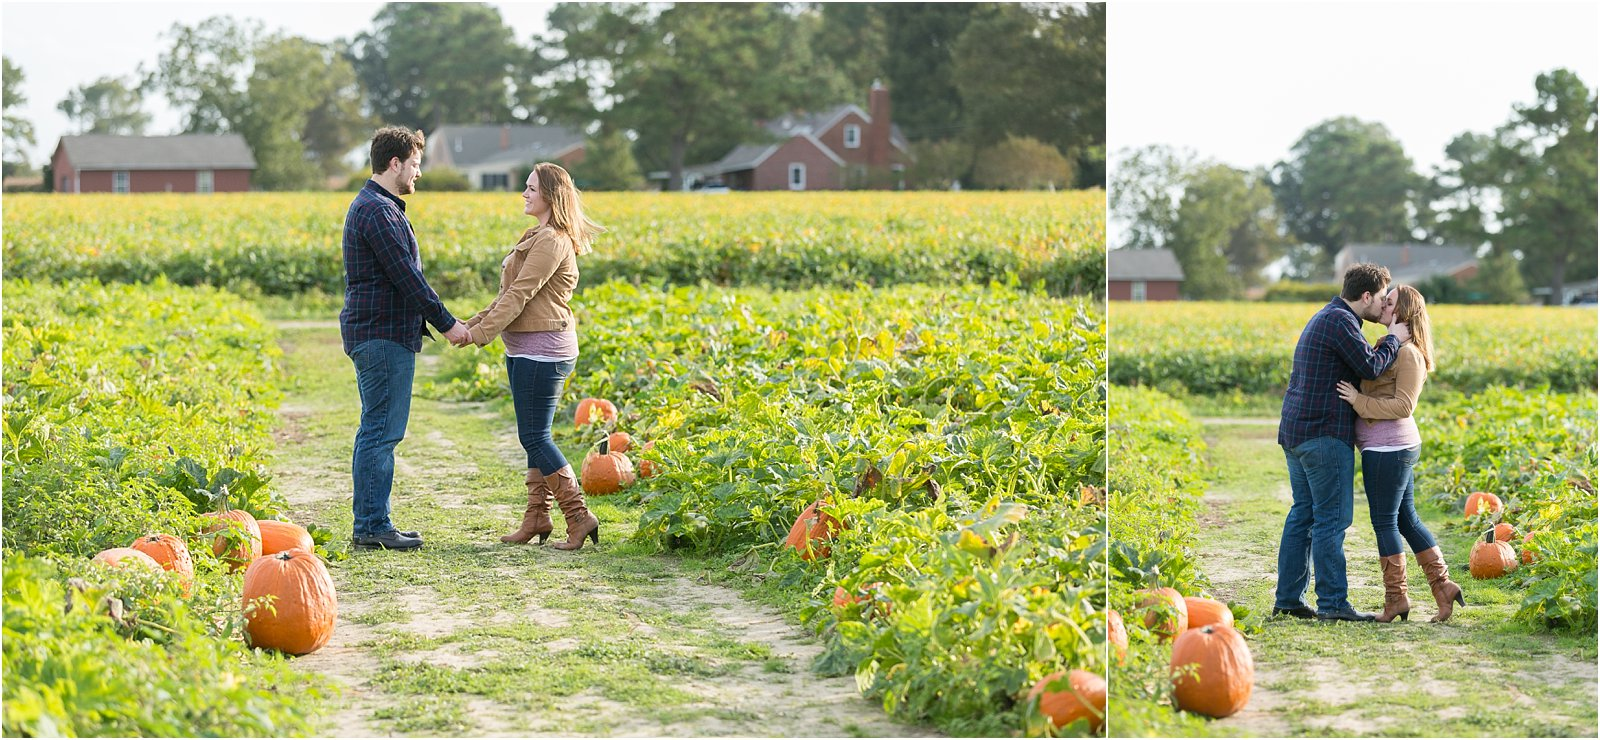 jessica_ryan_photography_pumpkin_patch_engagement_portraits_fall_october_engagements_virginia_beach_chesapeake_0286